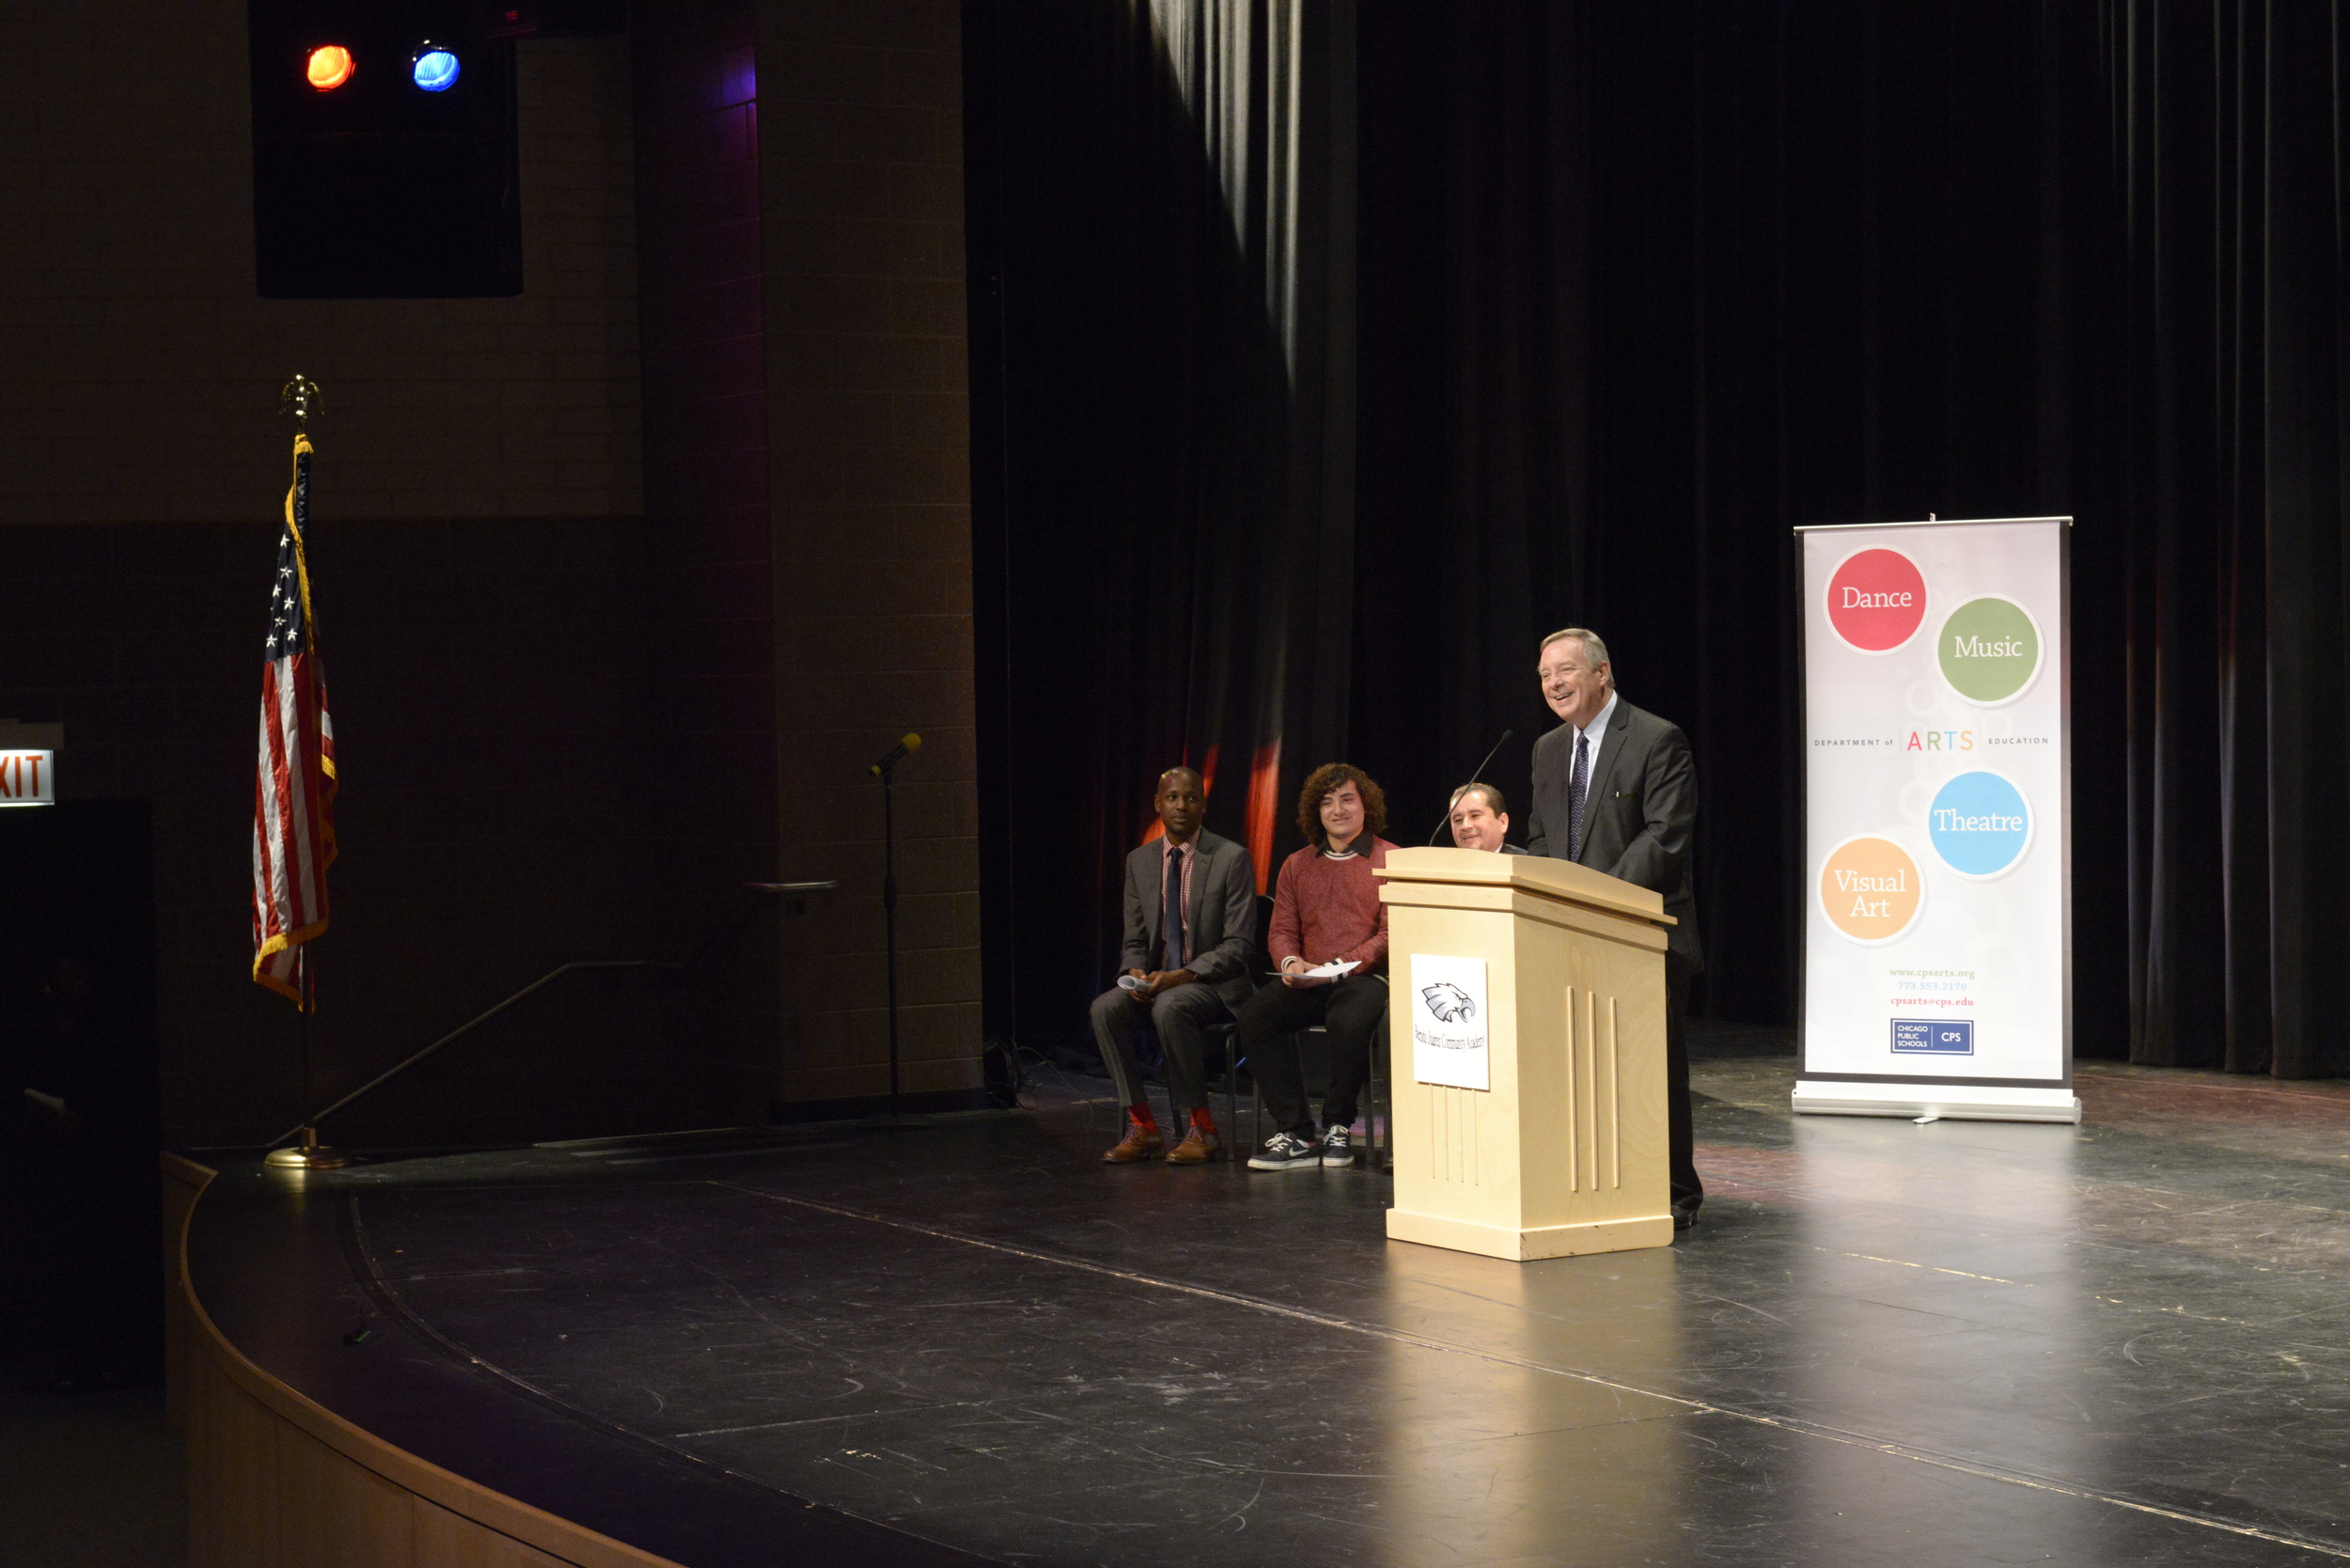 Senator Dick Durbin, a longtime arts advocate, remarks on the importance of arts education in Chicago's public schools